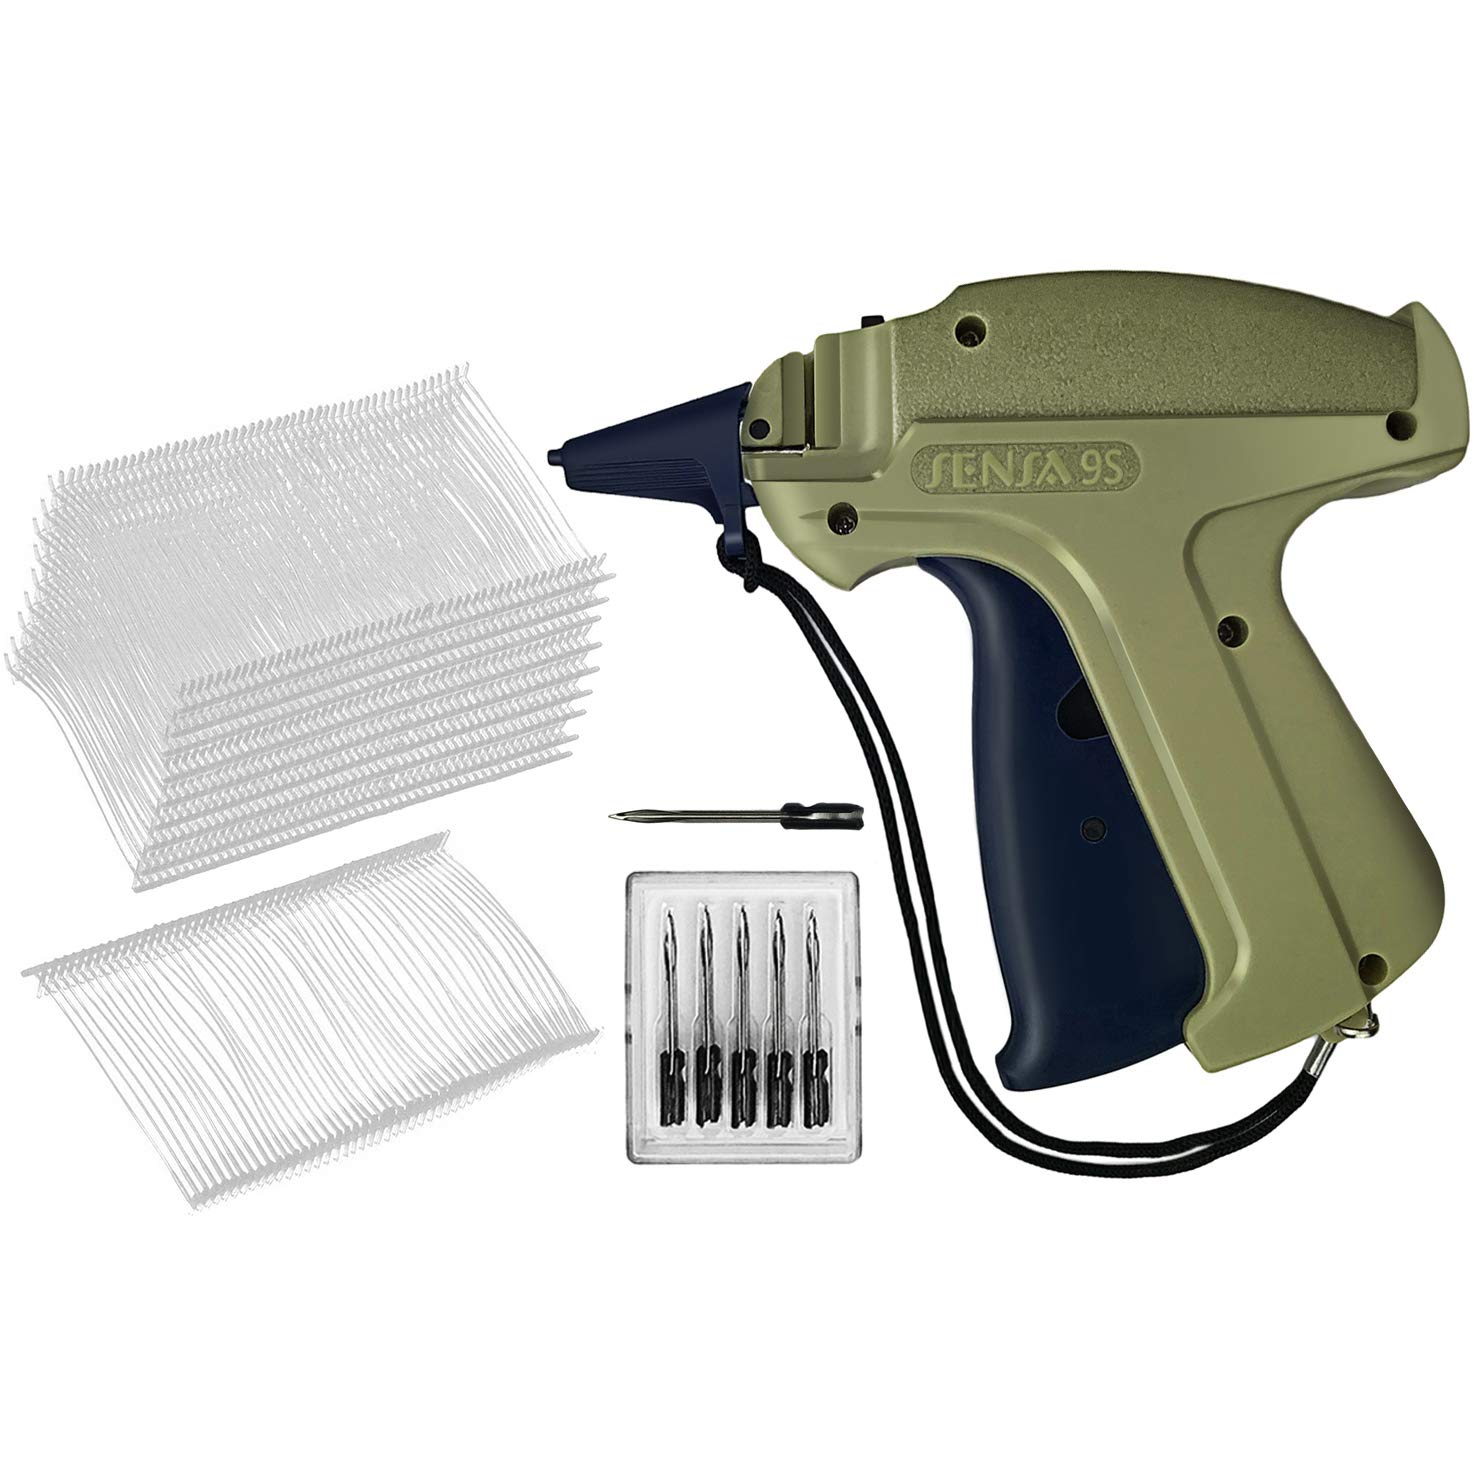 GILLRAJ MILAN Clothes Tagging Gun with 5000 2'' Standard Tags Attachments and 6 Needles Clothing Retail Price Tag Gun Kit for Boutique Store Warehouse Consignment Garage Yard Sale